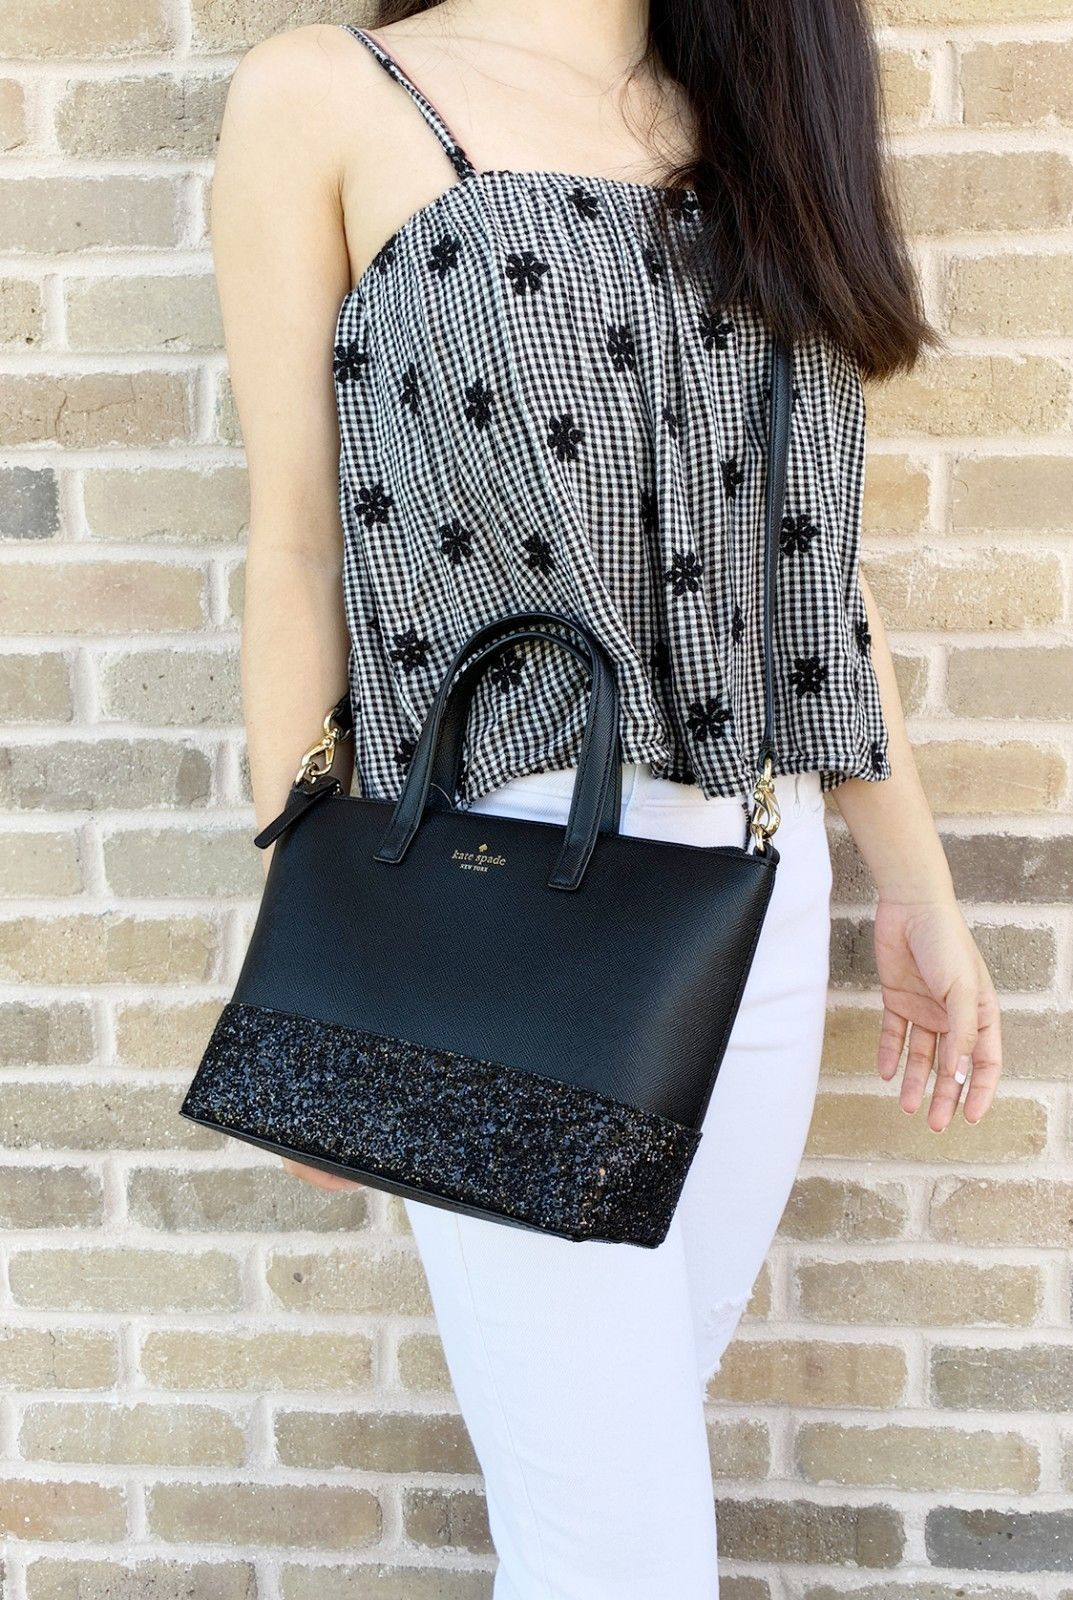 c5d7bcc705e Details about Kate Spade Greta Court Ina Glitter Small Top Zip ...